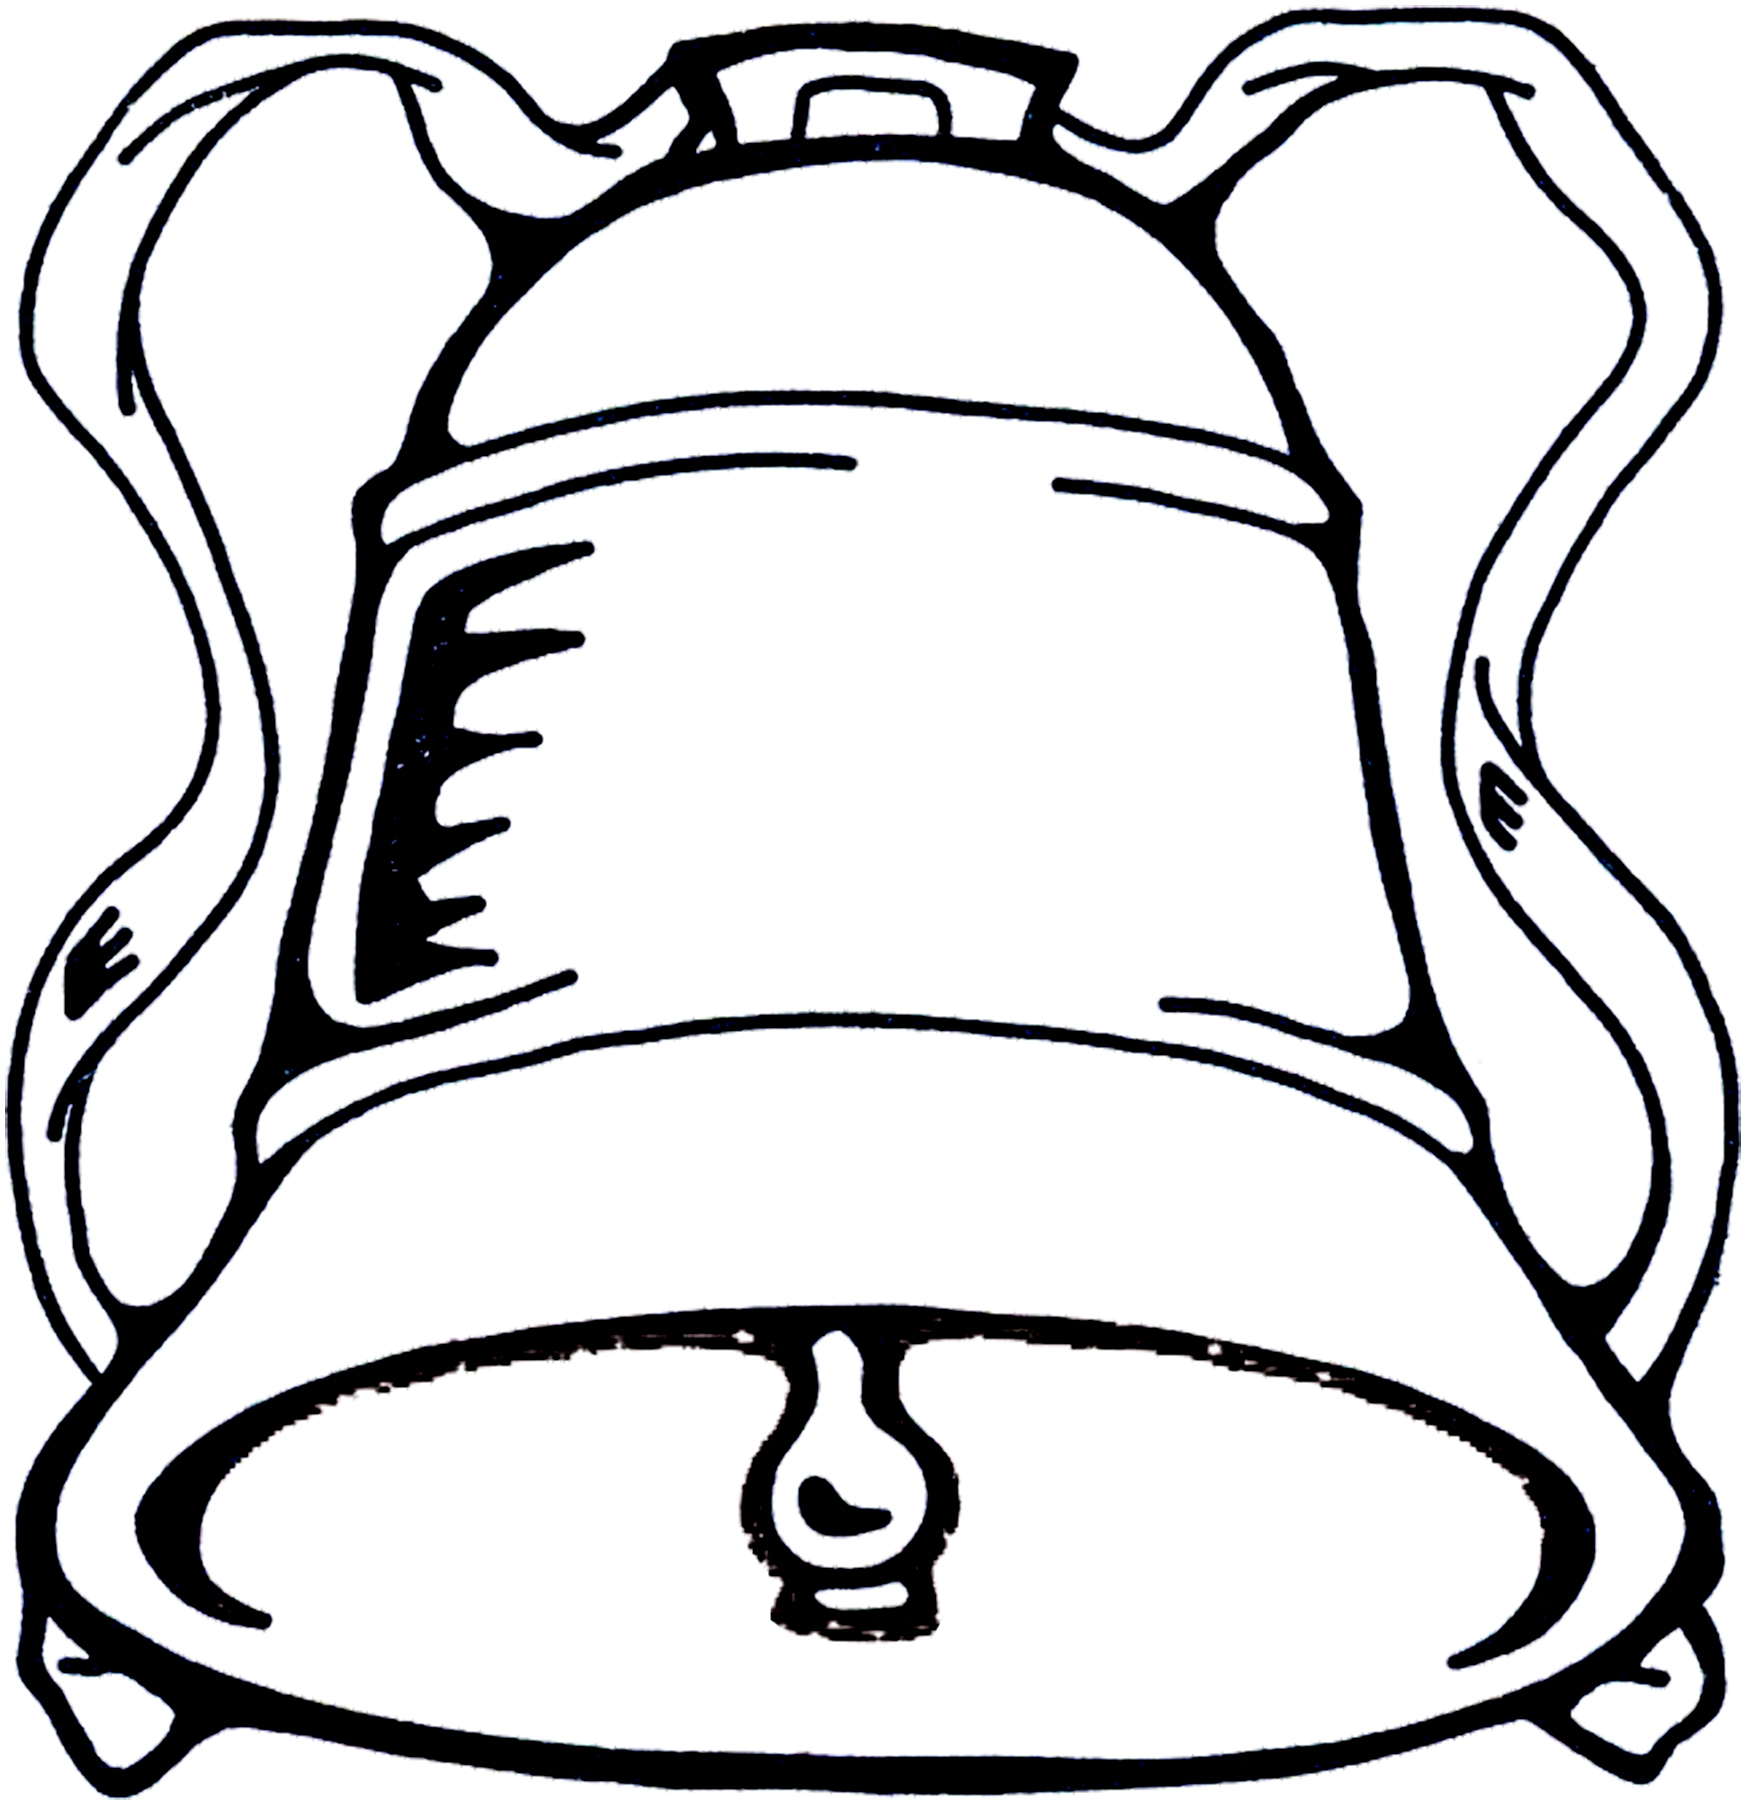 Bell Clip Art Black and White